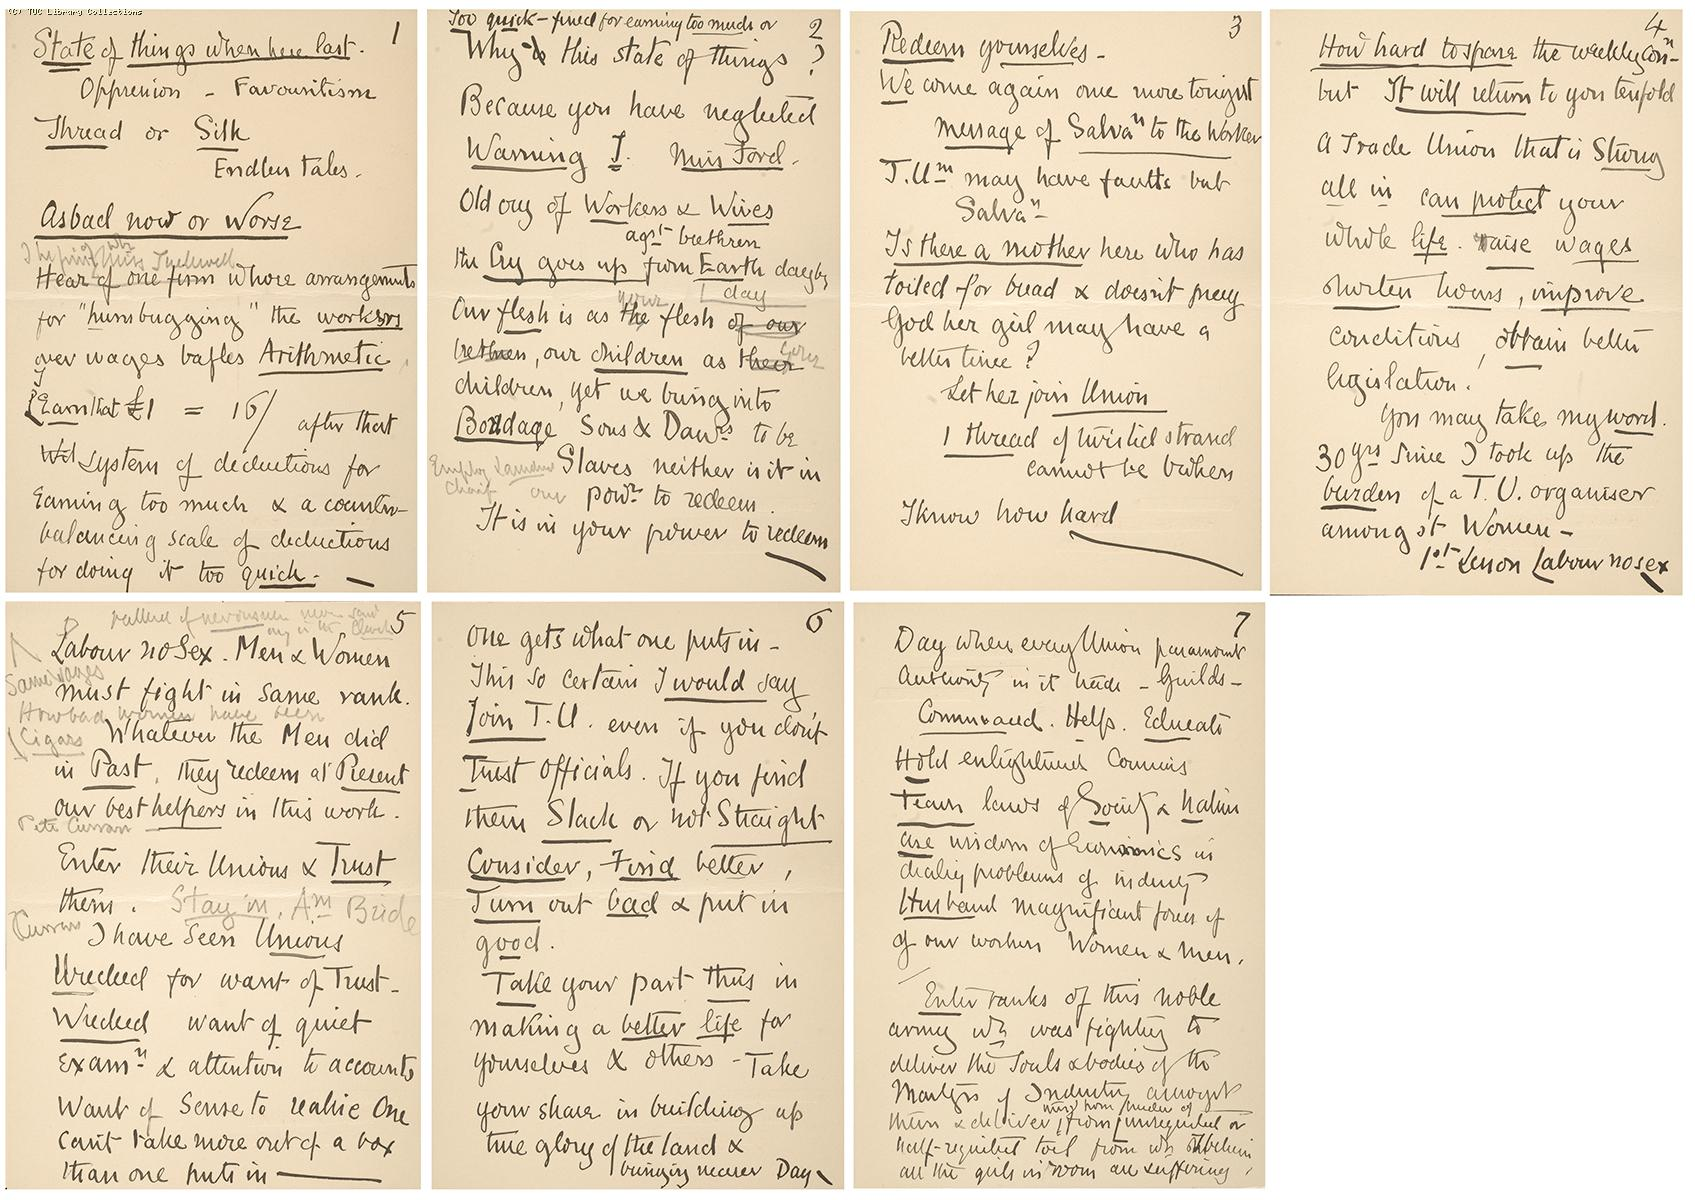 Lady Dilke's speech notes, 1904